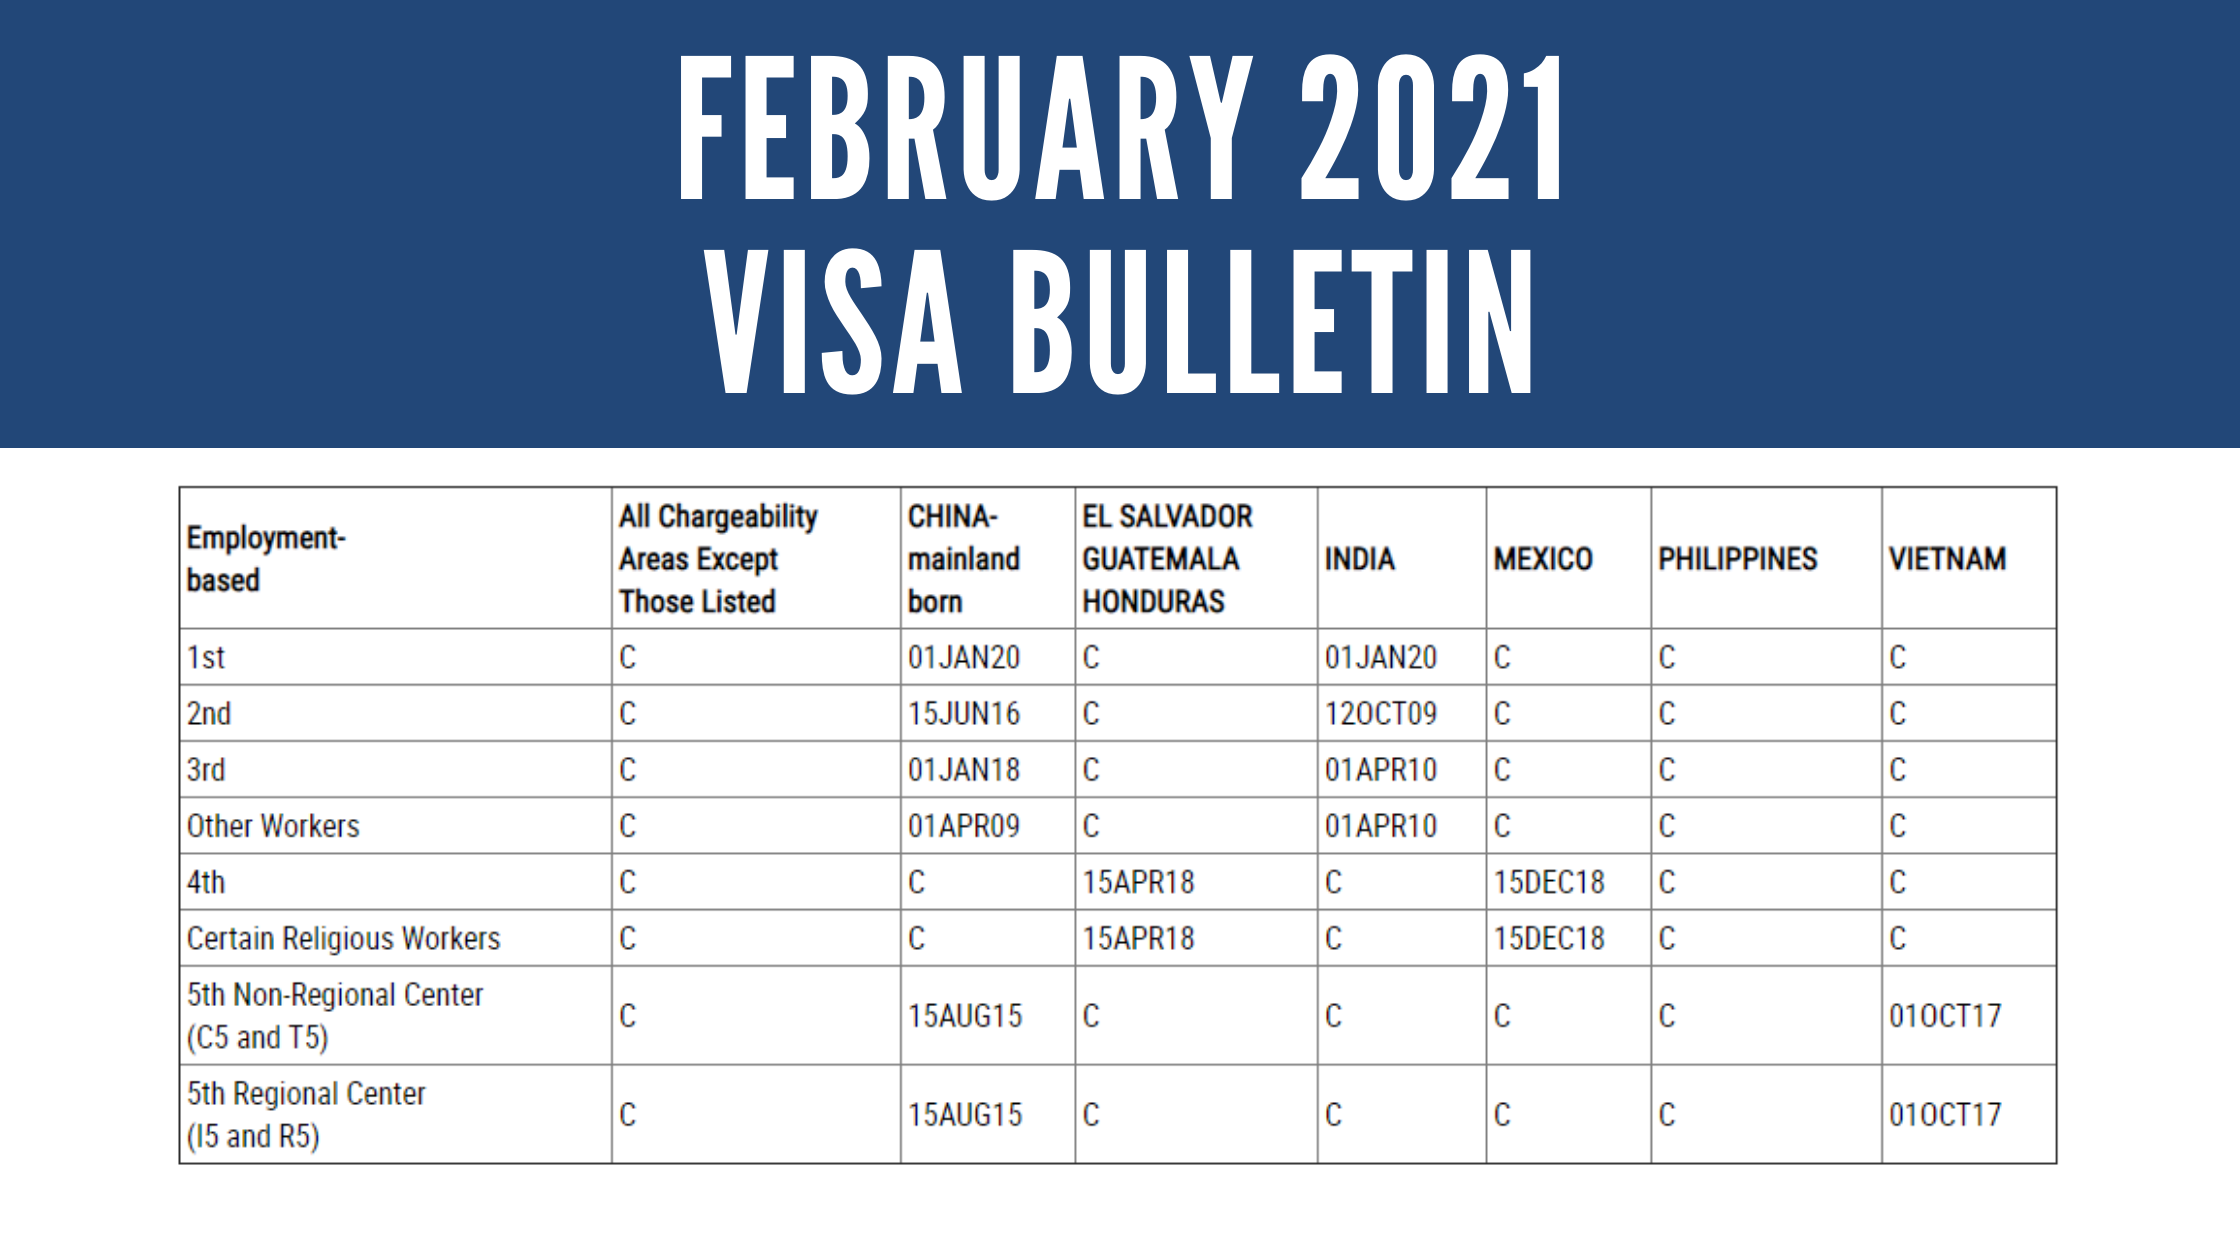 February 2021 Visa Bulletin: Vietnam EB-5 Dates Continued to Advance; NVC Annual Report of Visa Waitlist Now Available